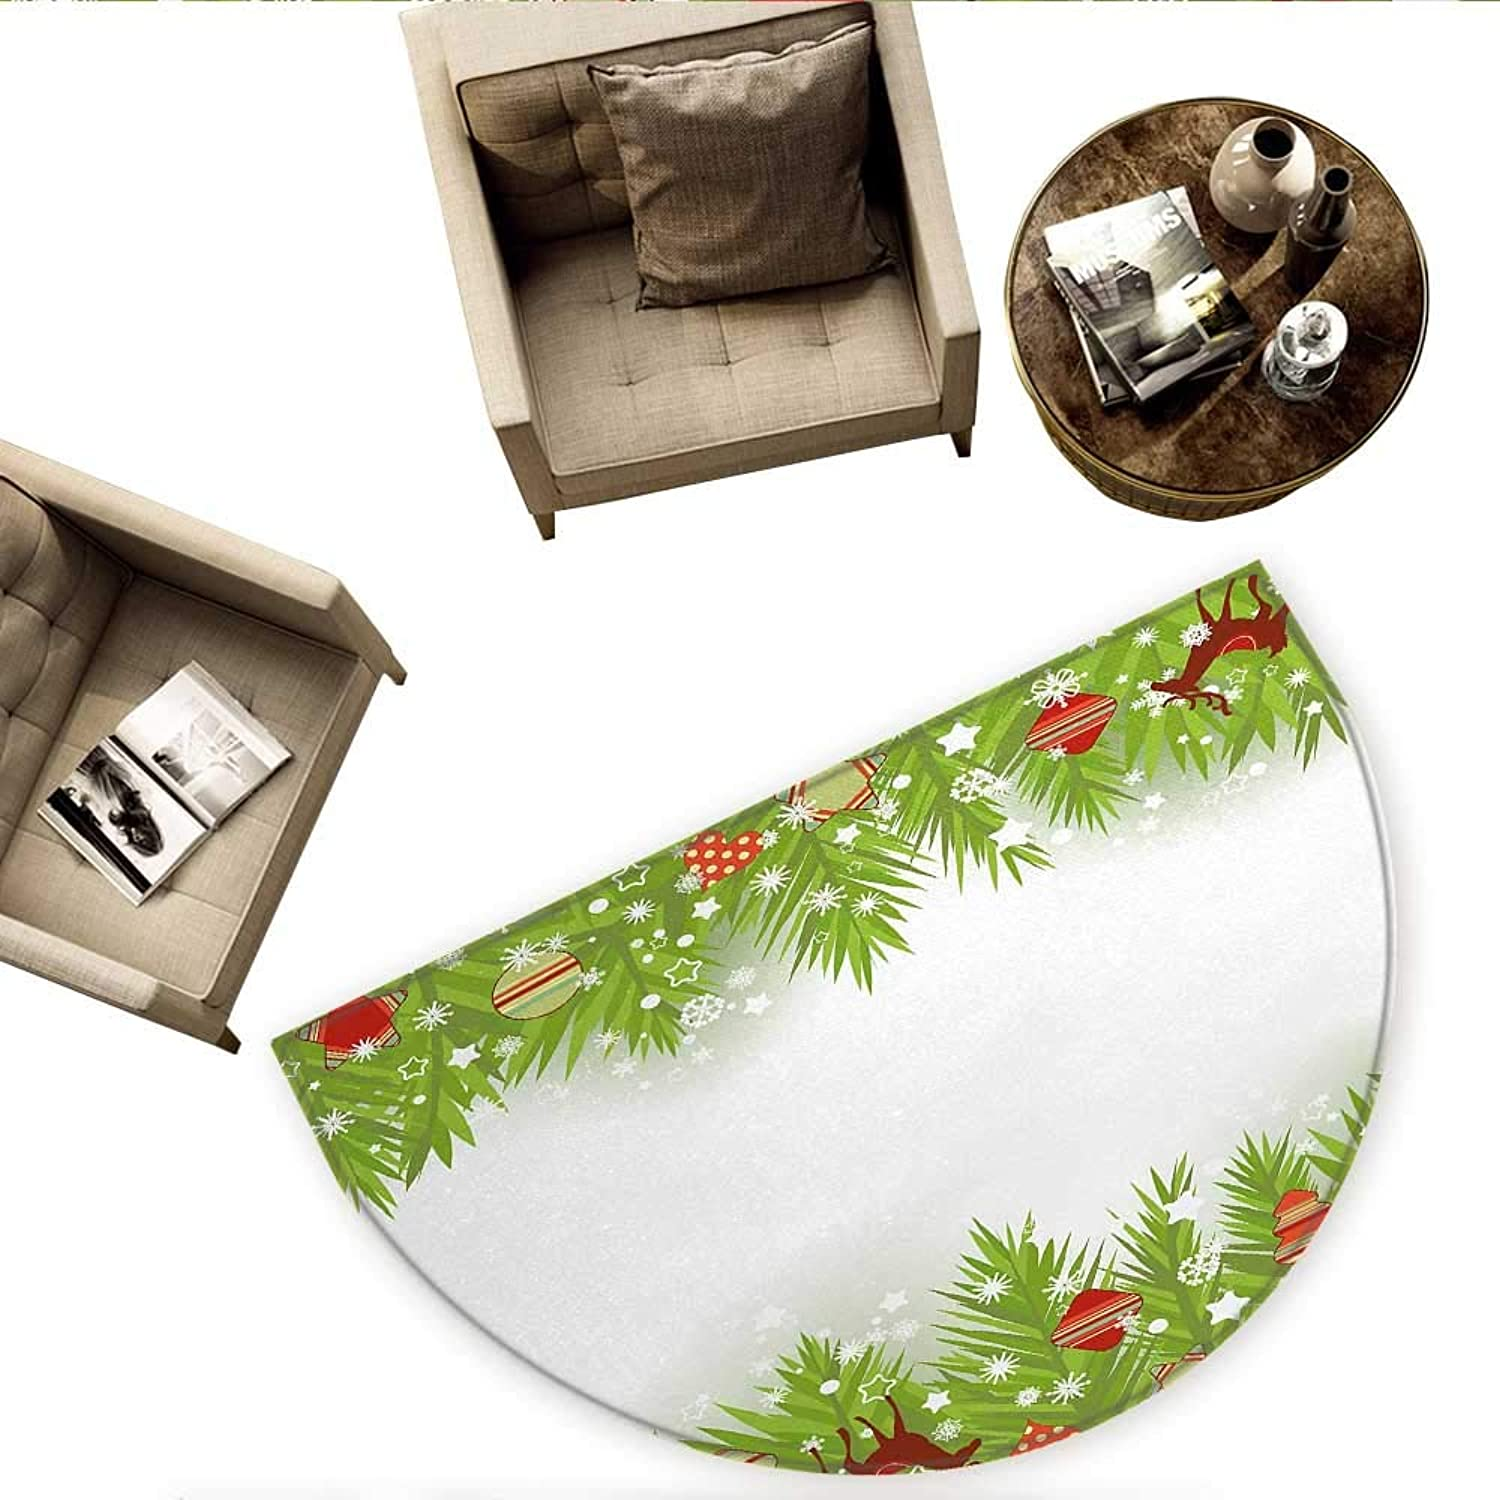 Kids Christmas Semicircular CushionSpruce Coniferous Noel Tree Border with Artistic Flakes Reindeer and Hearts Entry Door Mat H 59  xD 88.6  Multicolor